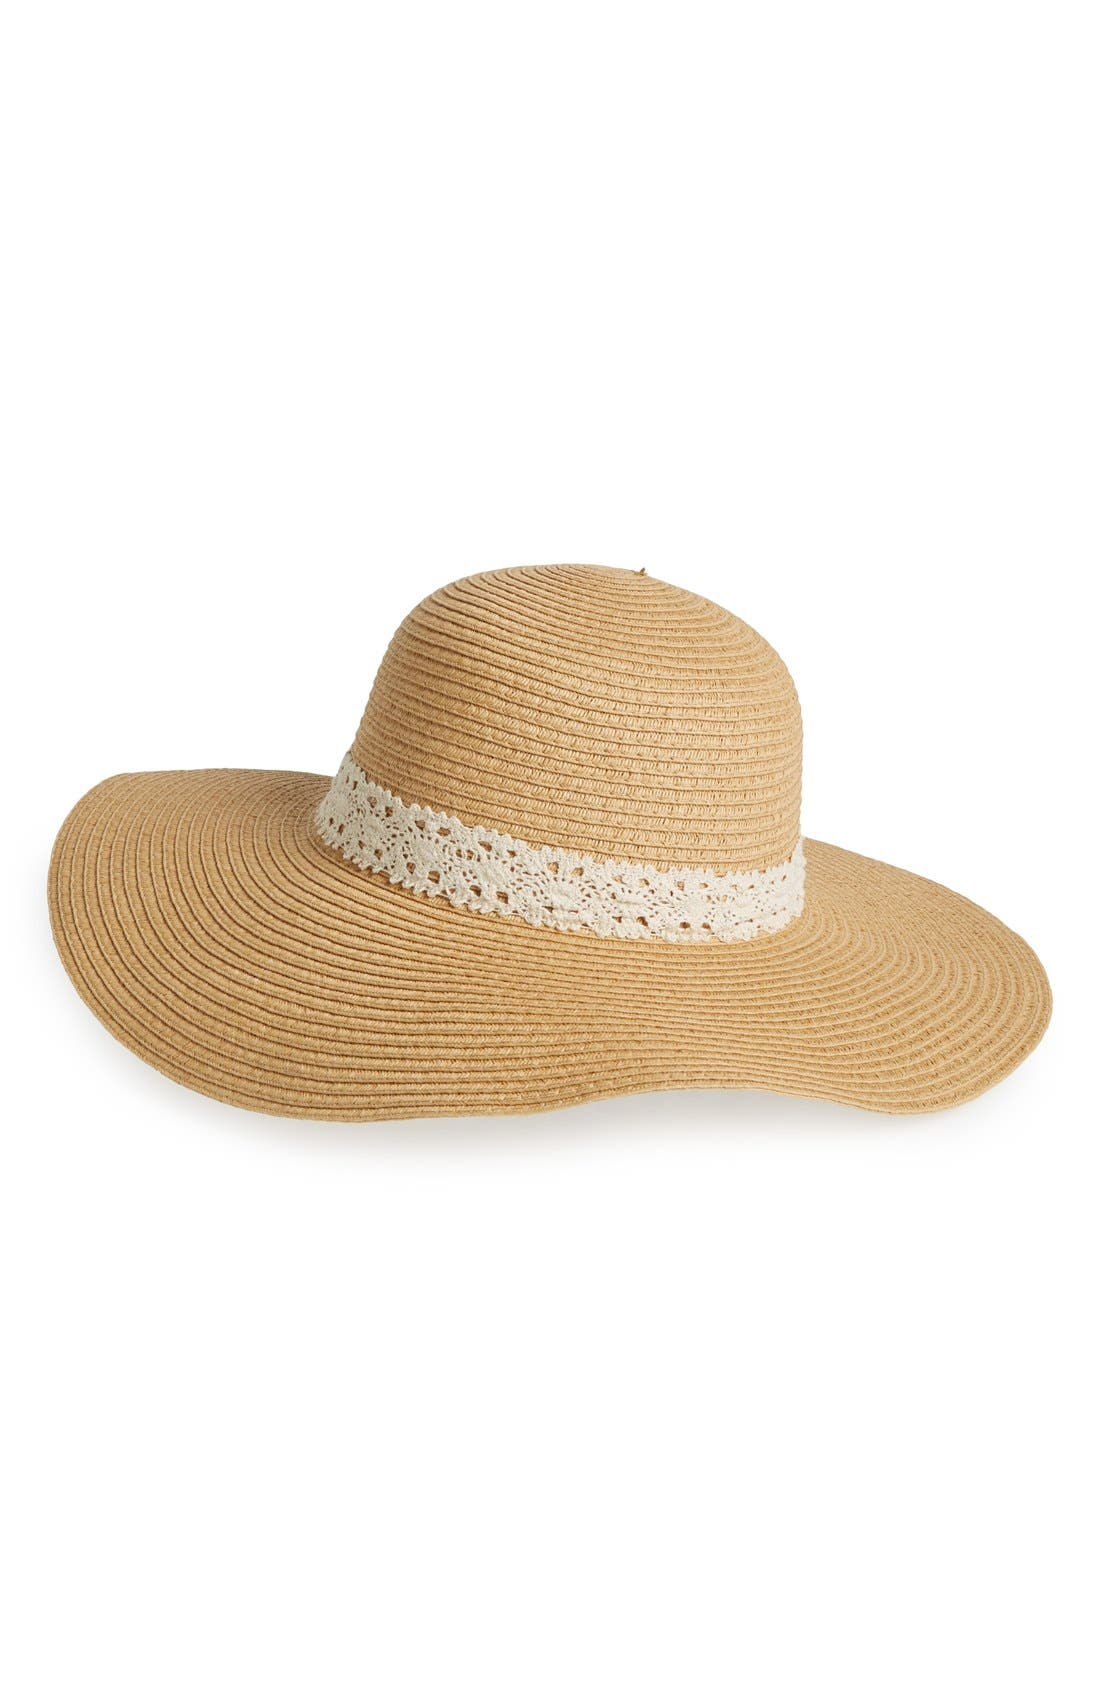 Alternate Image 1 Selected - Amici Accessories Crochet Band Floppy Straw Hat